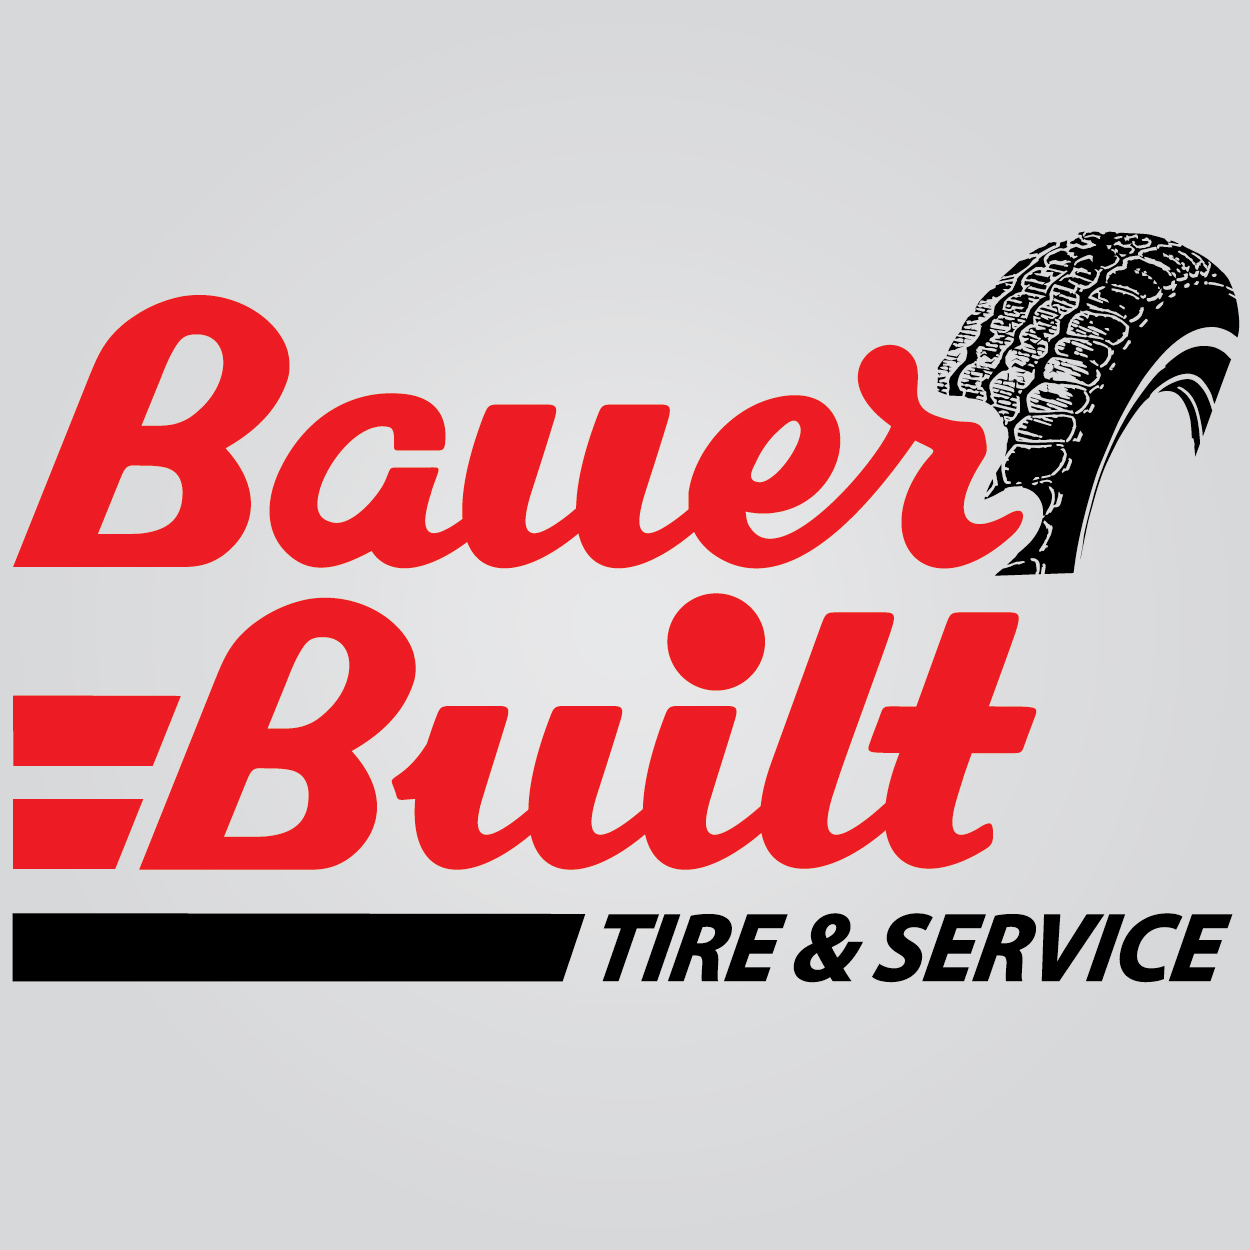 Bauer Built Tire & Service in Fremont, NE. Custom tire retreading of passenger, light & commercial truck, agricultural, industrial & off-the-road tires, including rim & wheel reconditioning & powder coating & distributor of new commercial truck tires.